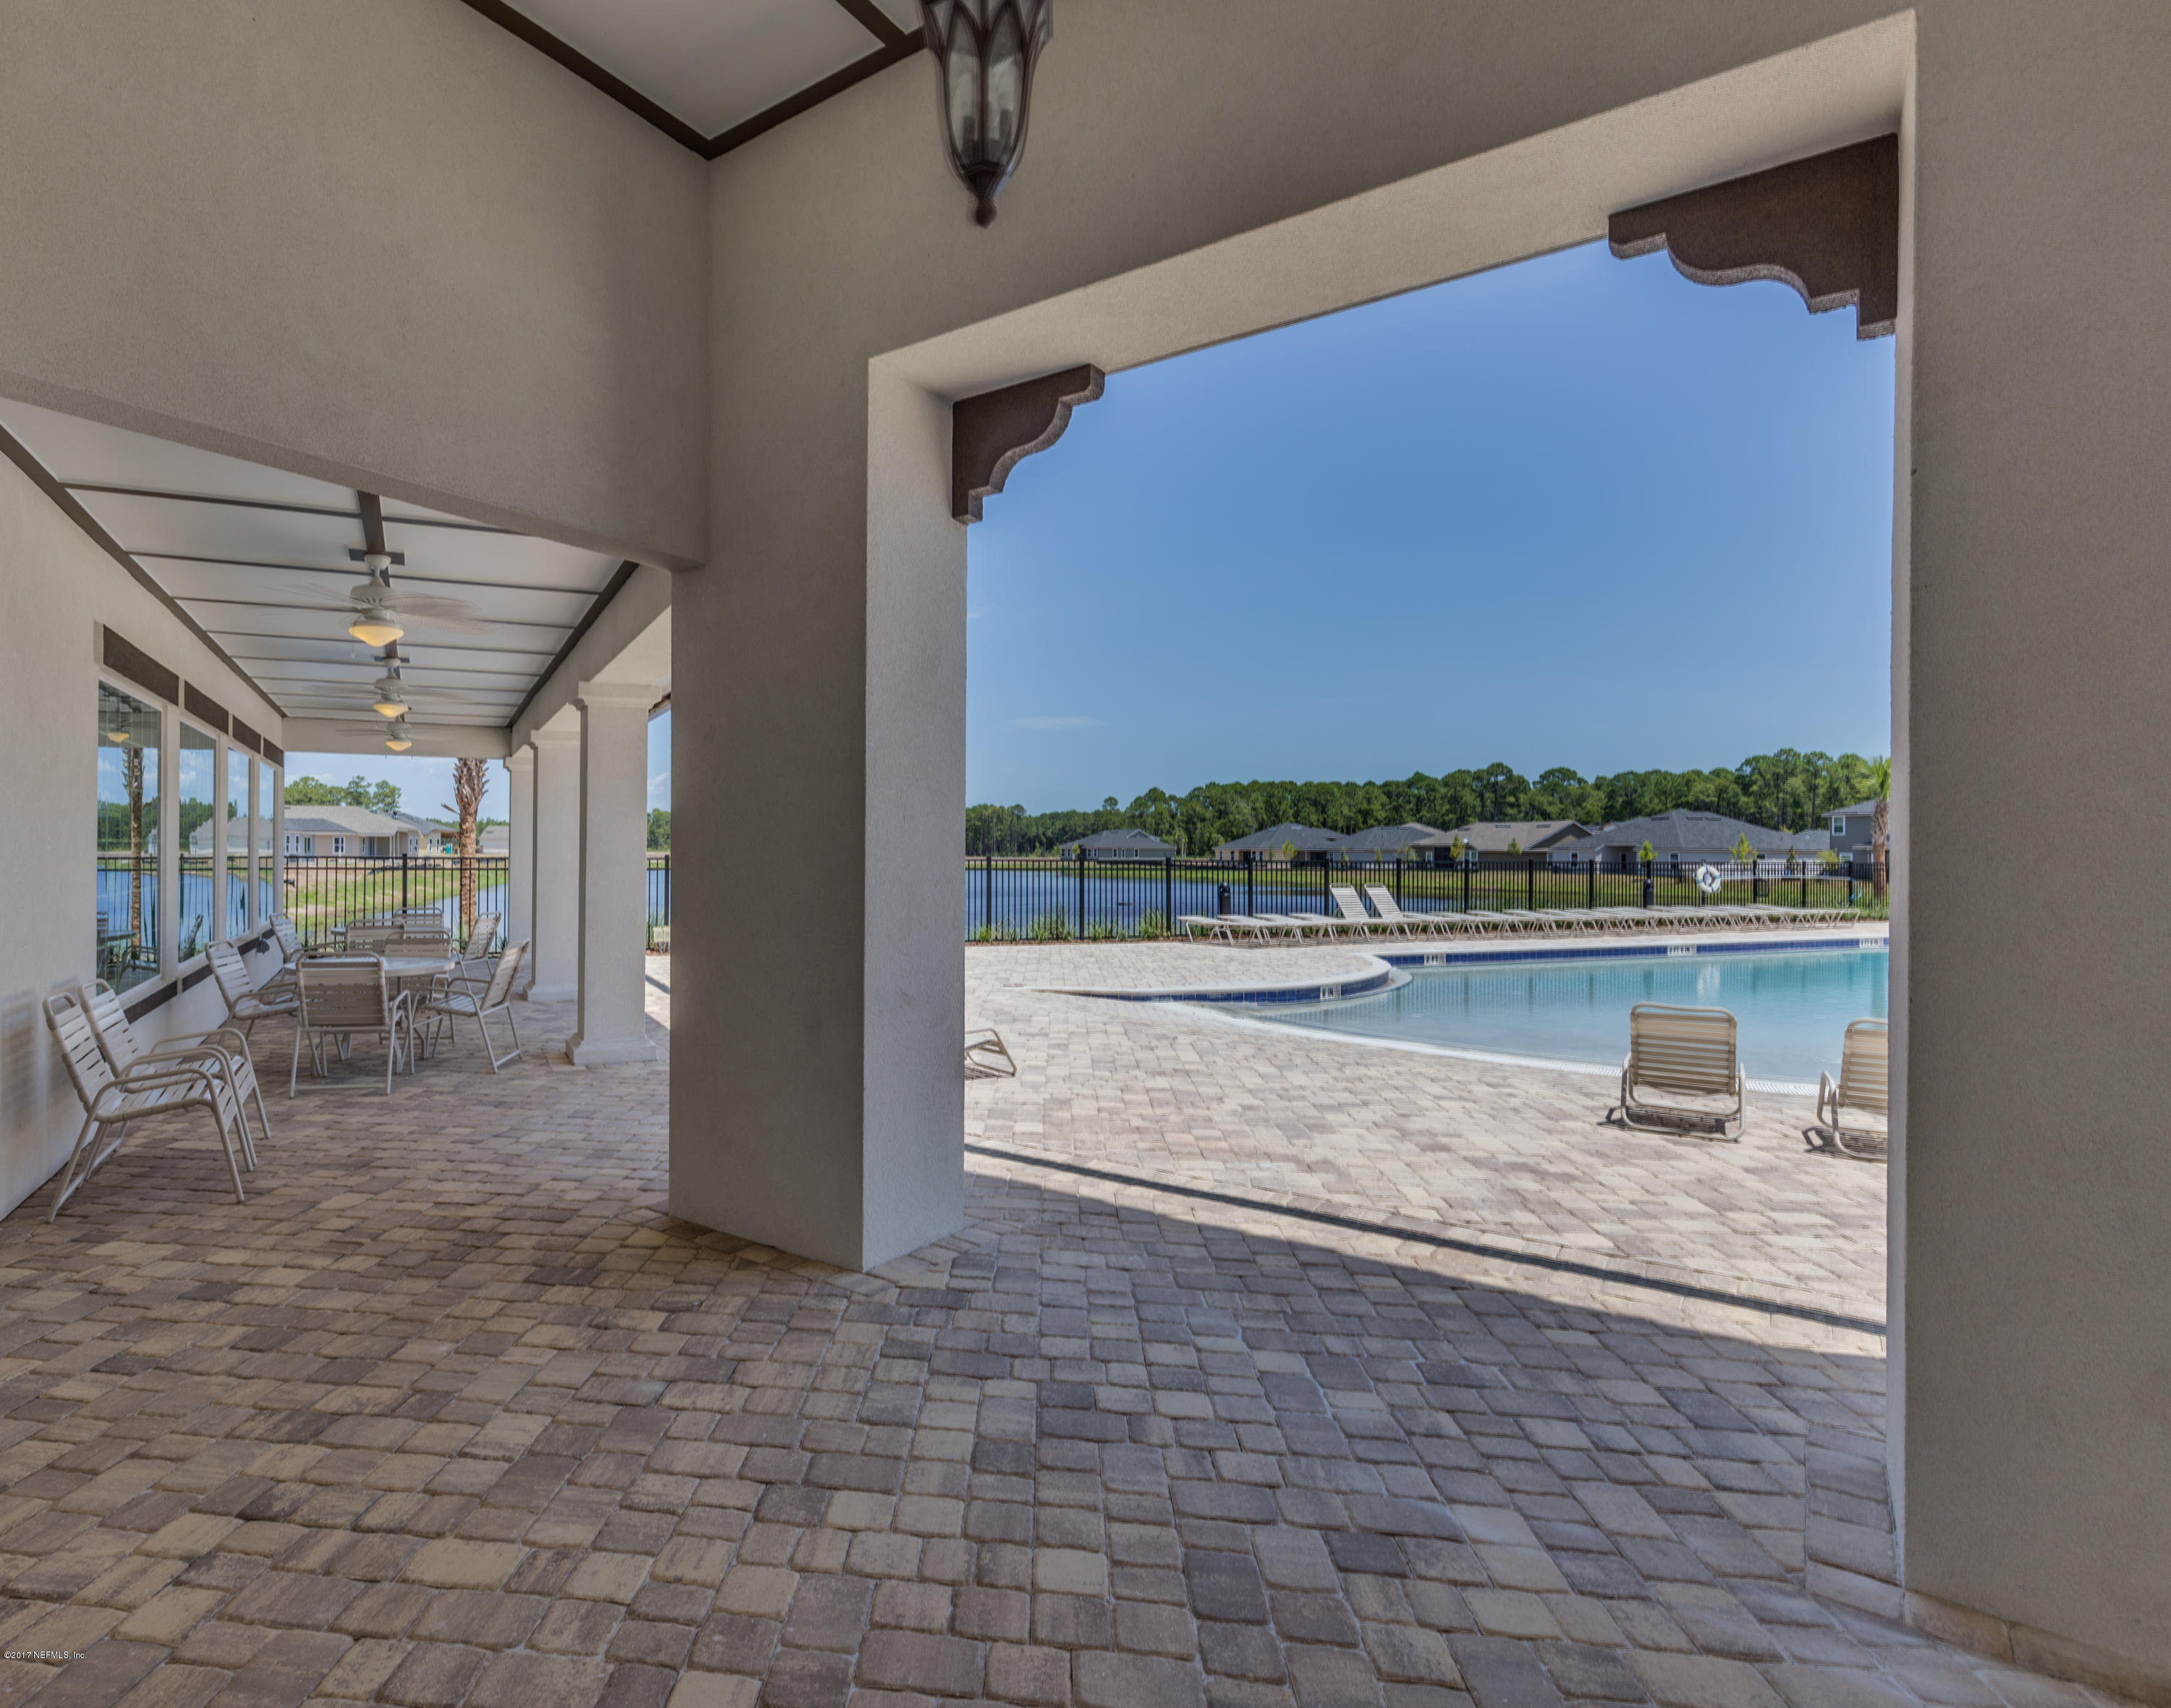 498 PALACE, ST AUGUSTINE, FLORIDA 32084, 3 Bedrooms Bedrooms, ,2 BathroomsBathrooms,Residential,For sale,PALACE,1059770